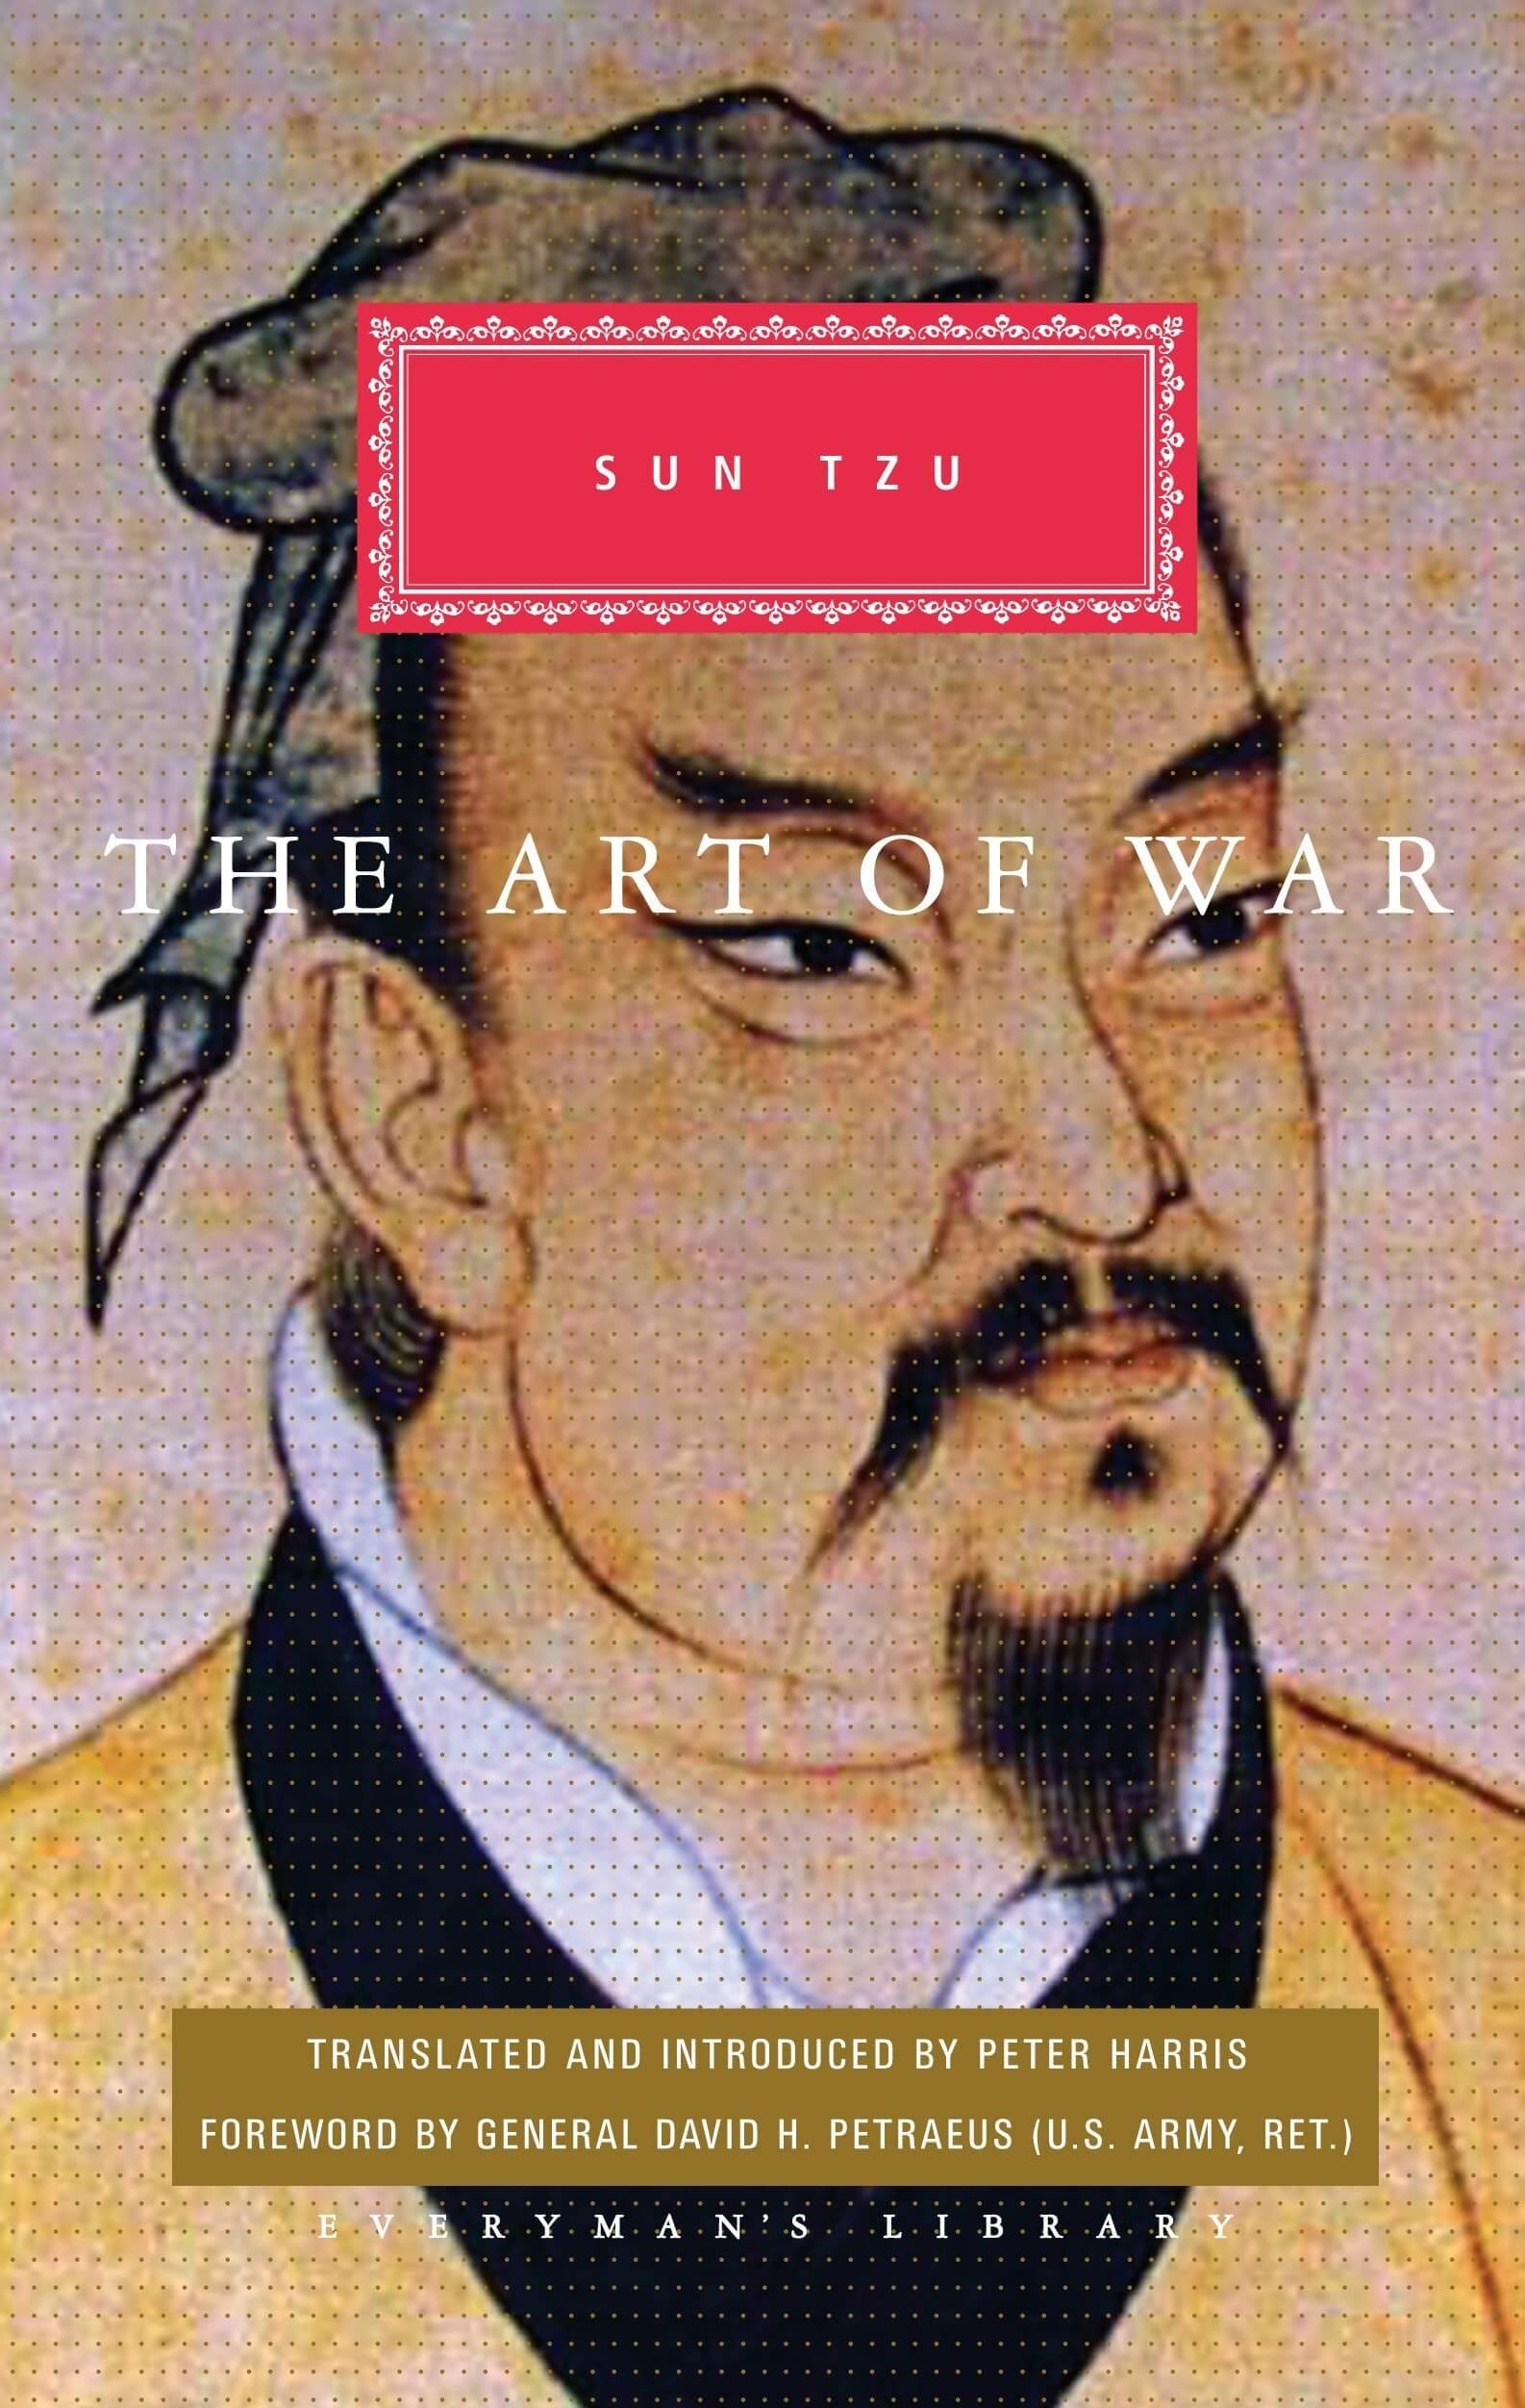 book summary - The Art of War by Sun Tzu